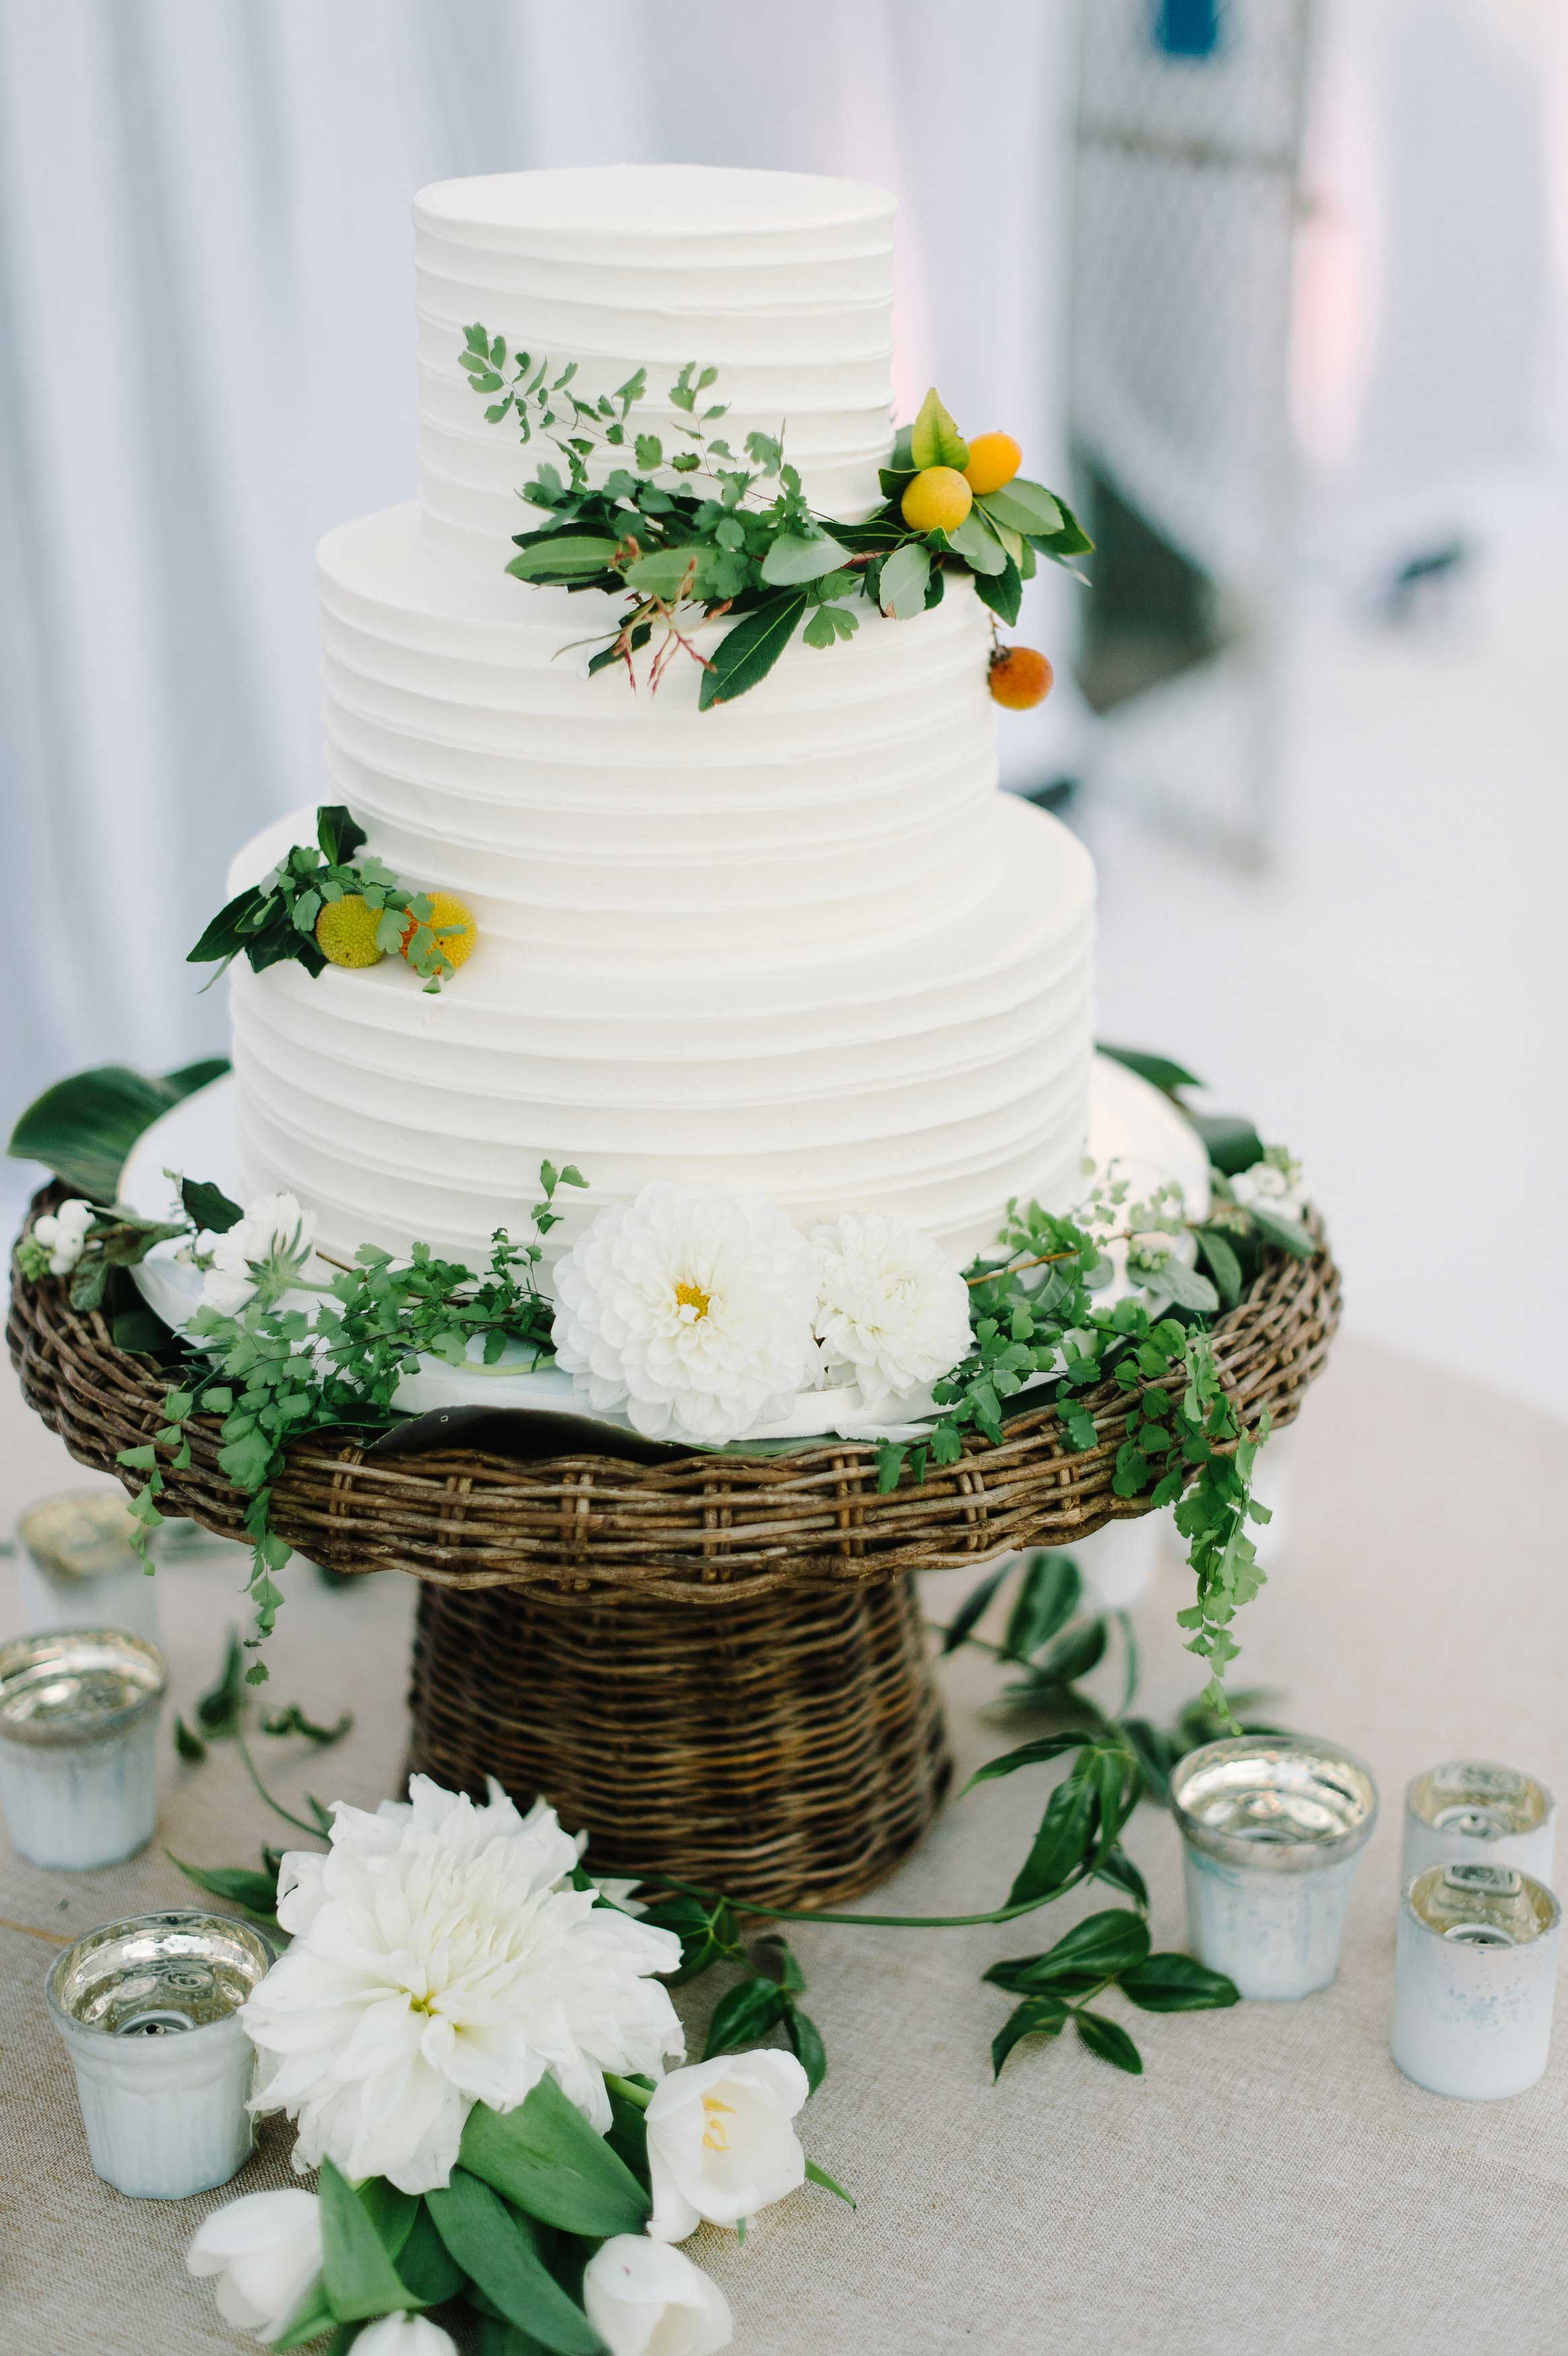 Wedding Cakes: Pros and Cons of Buttercream vs. Fondant - Inside ...